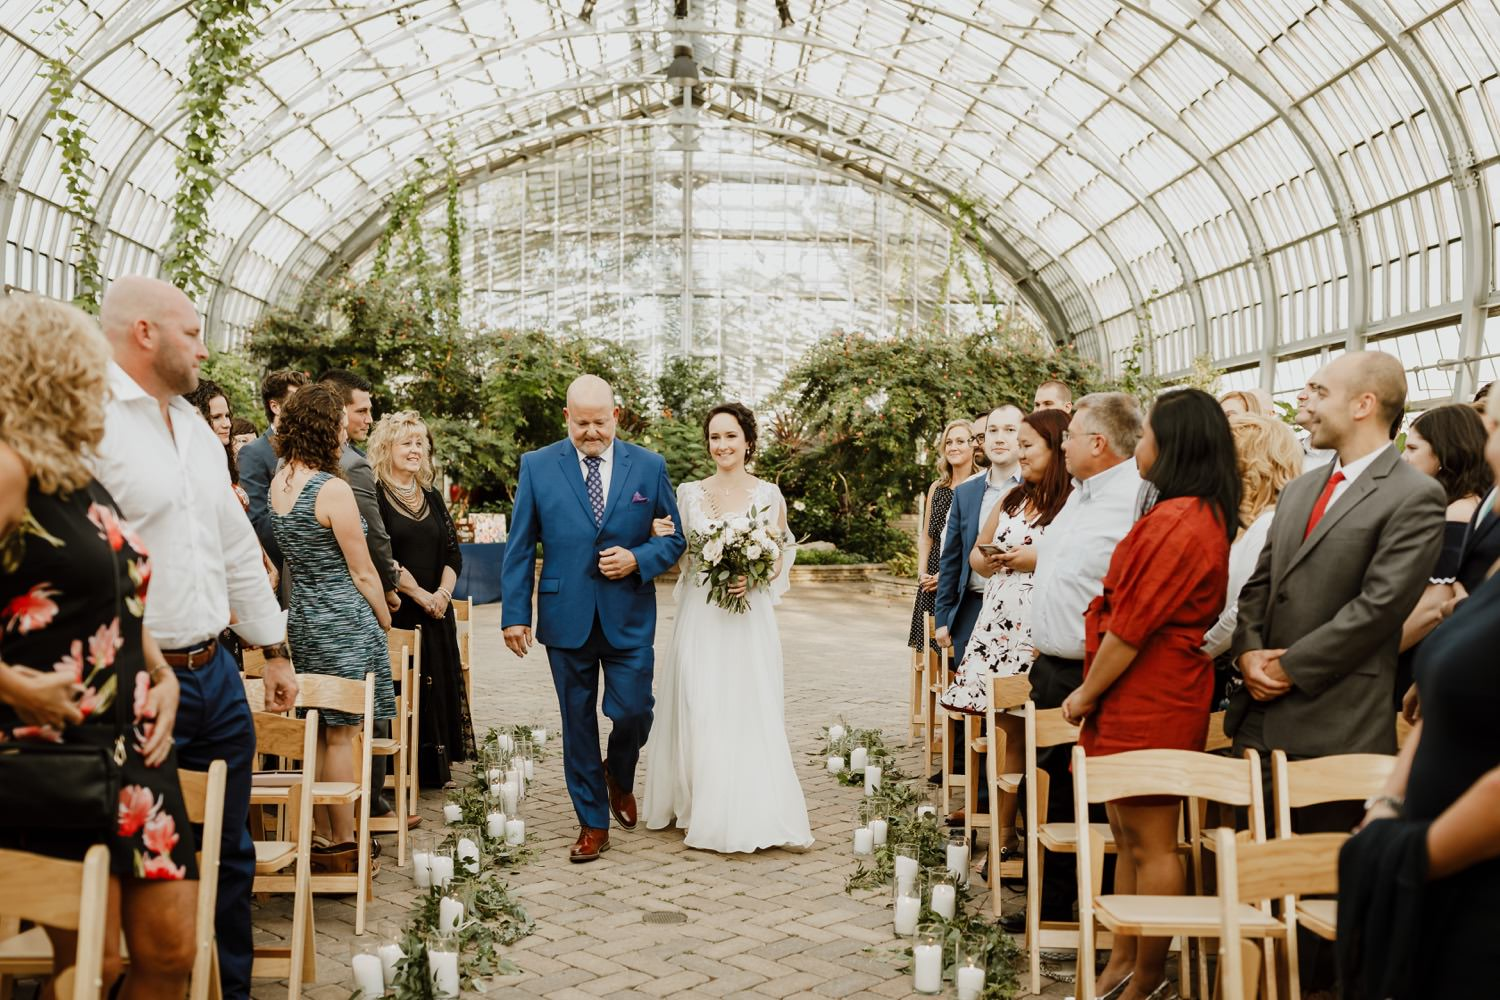 Garfield park conservatory wedding ceremony photographer. Father and the bride walking down the isle.